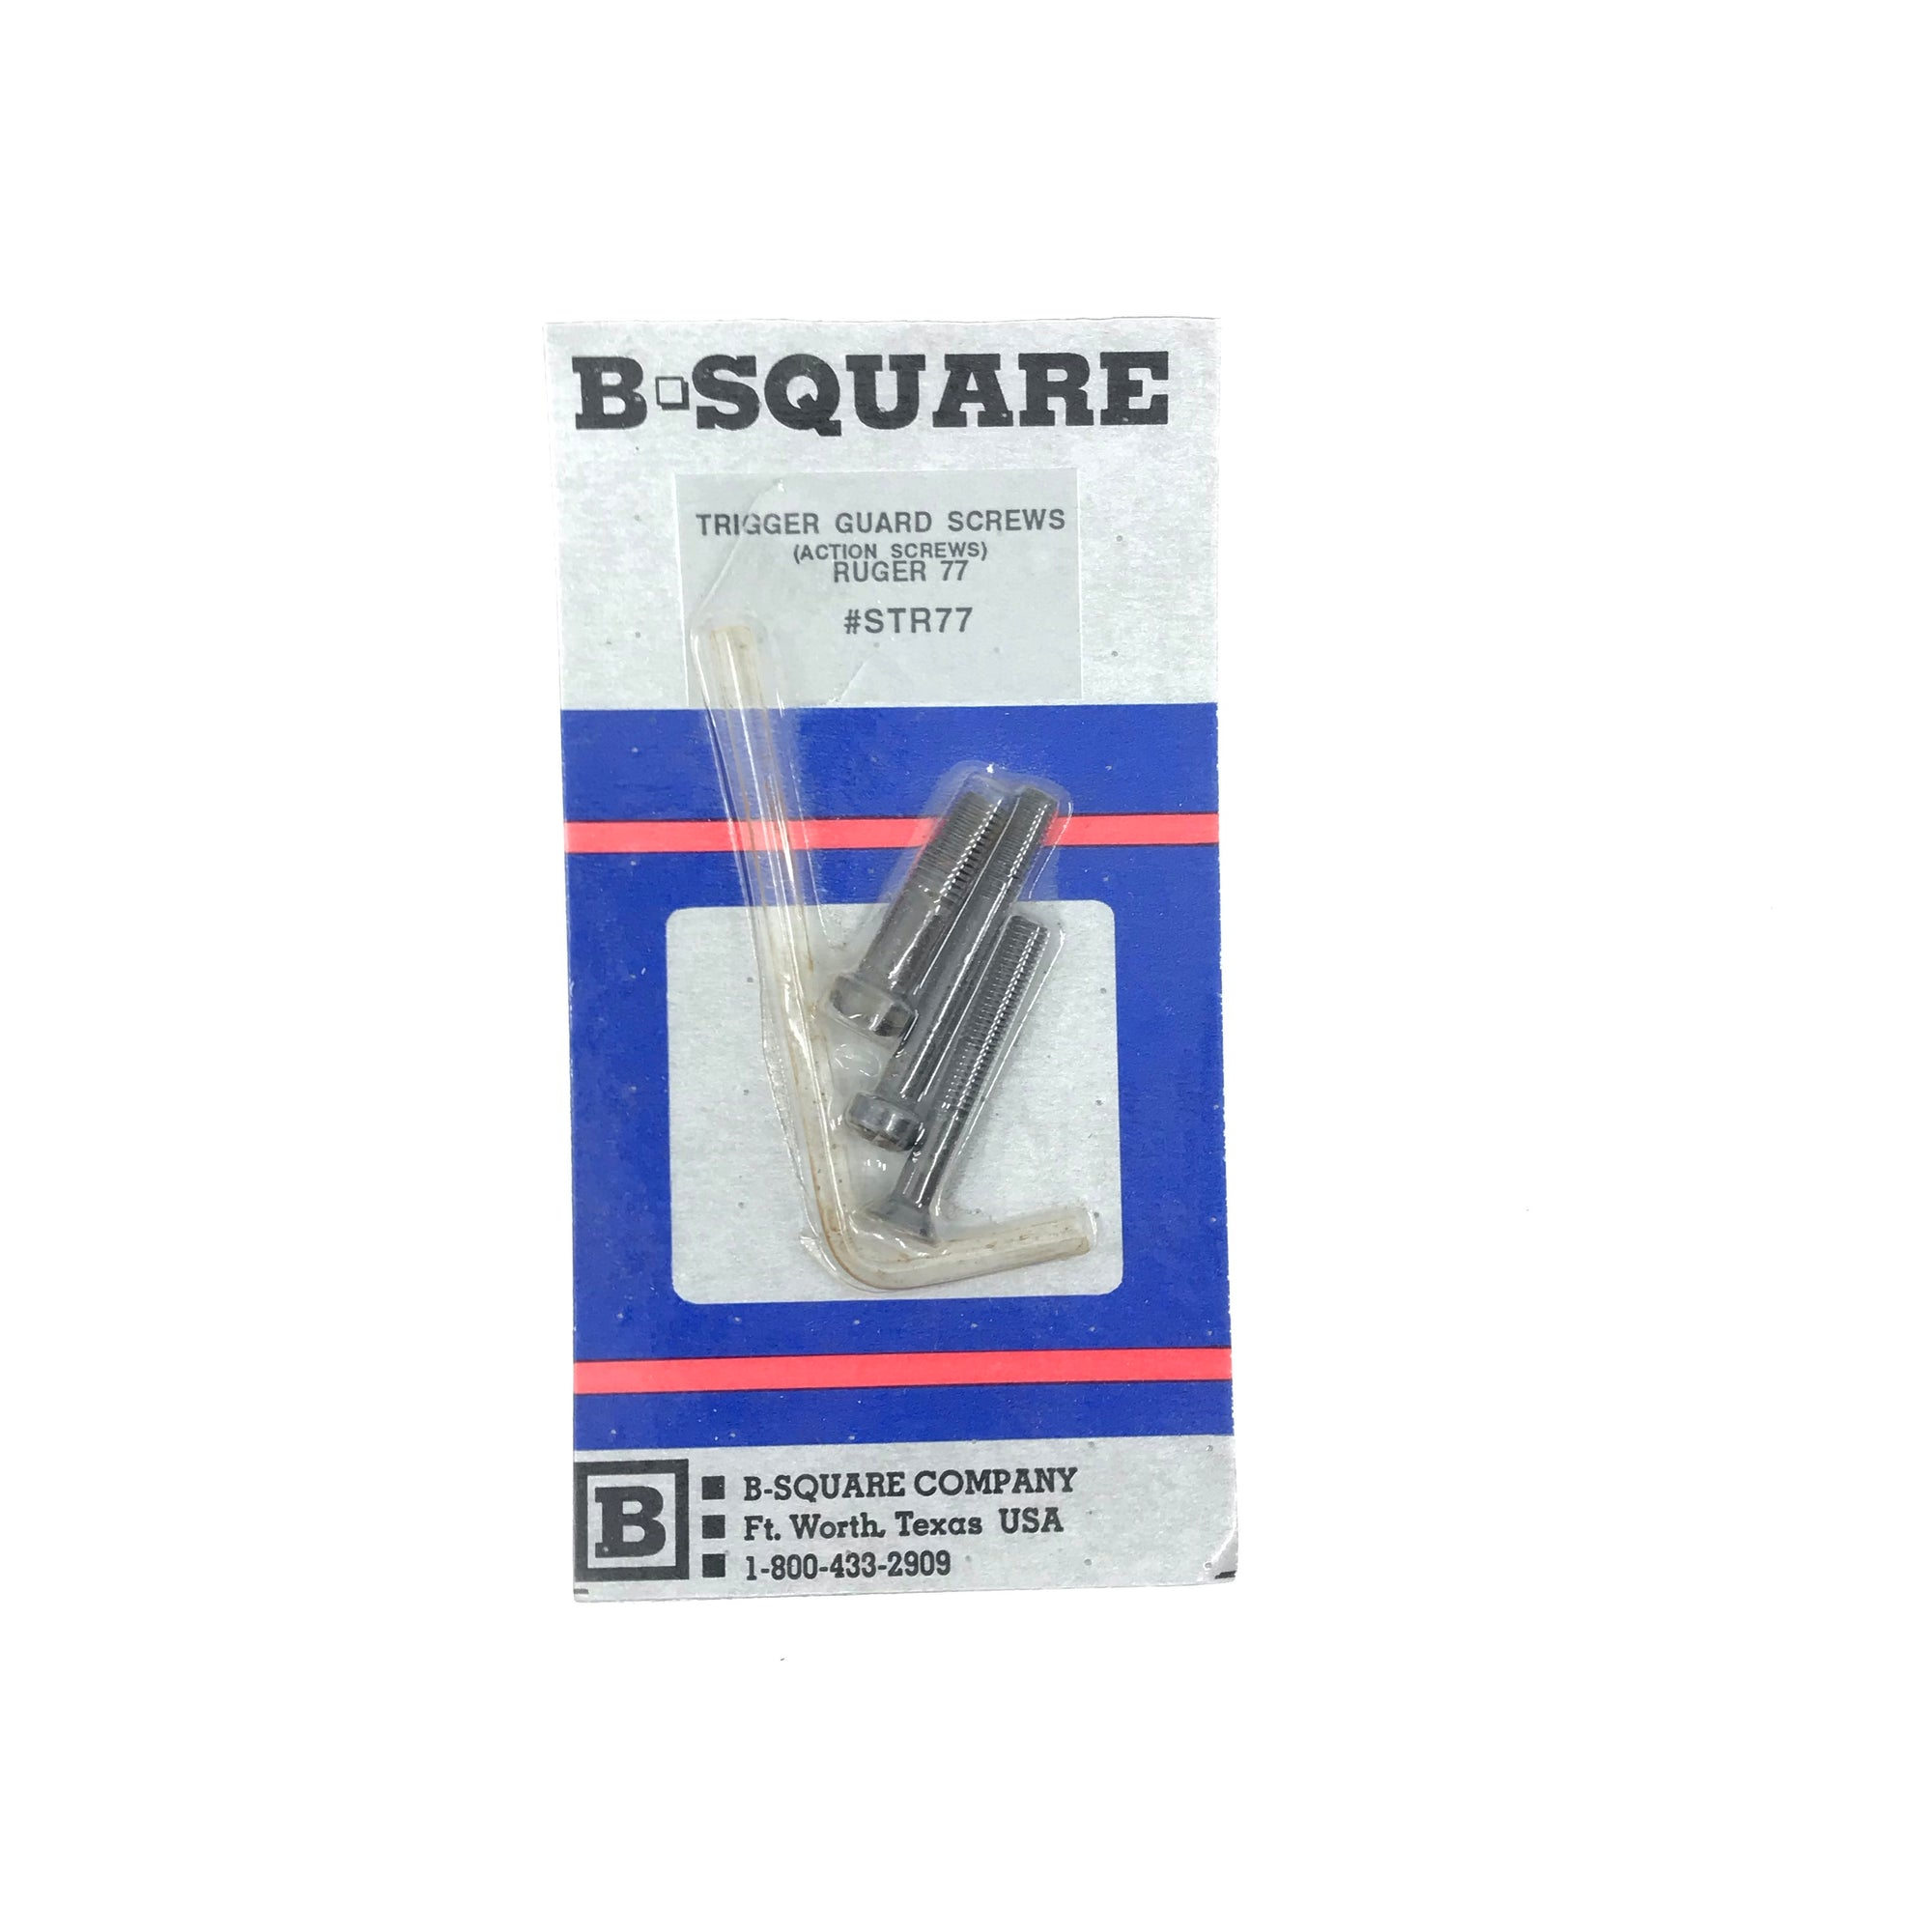 B-Square STR77 Trigger Guard Action Screws For Ruger 77 Rifle